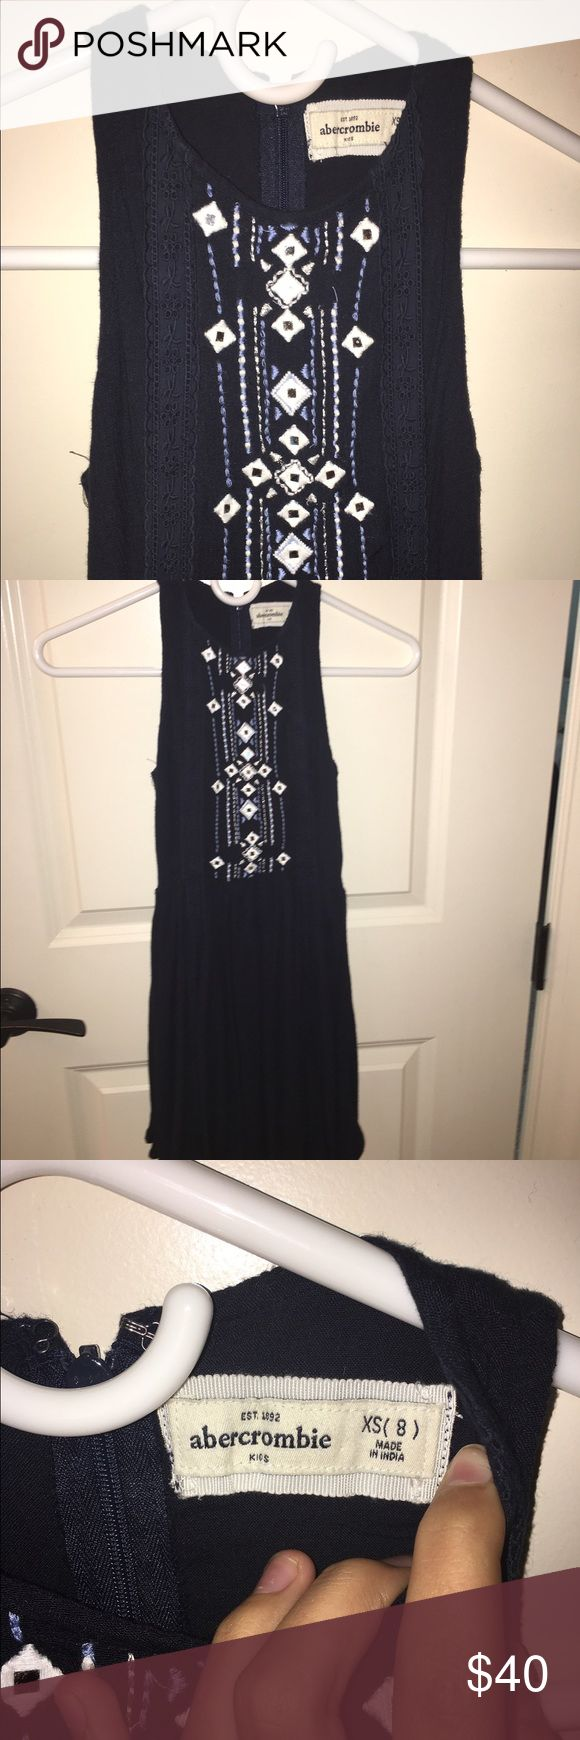 Navy Abercrombie dress Never warn!! Very cute! size 8 in Abercrombie Kids :) It is a Navy color not black. if u have any questions feel free to comment them :) abercrombie kids Dresses Casual